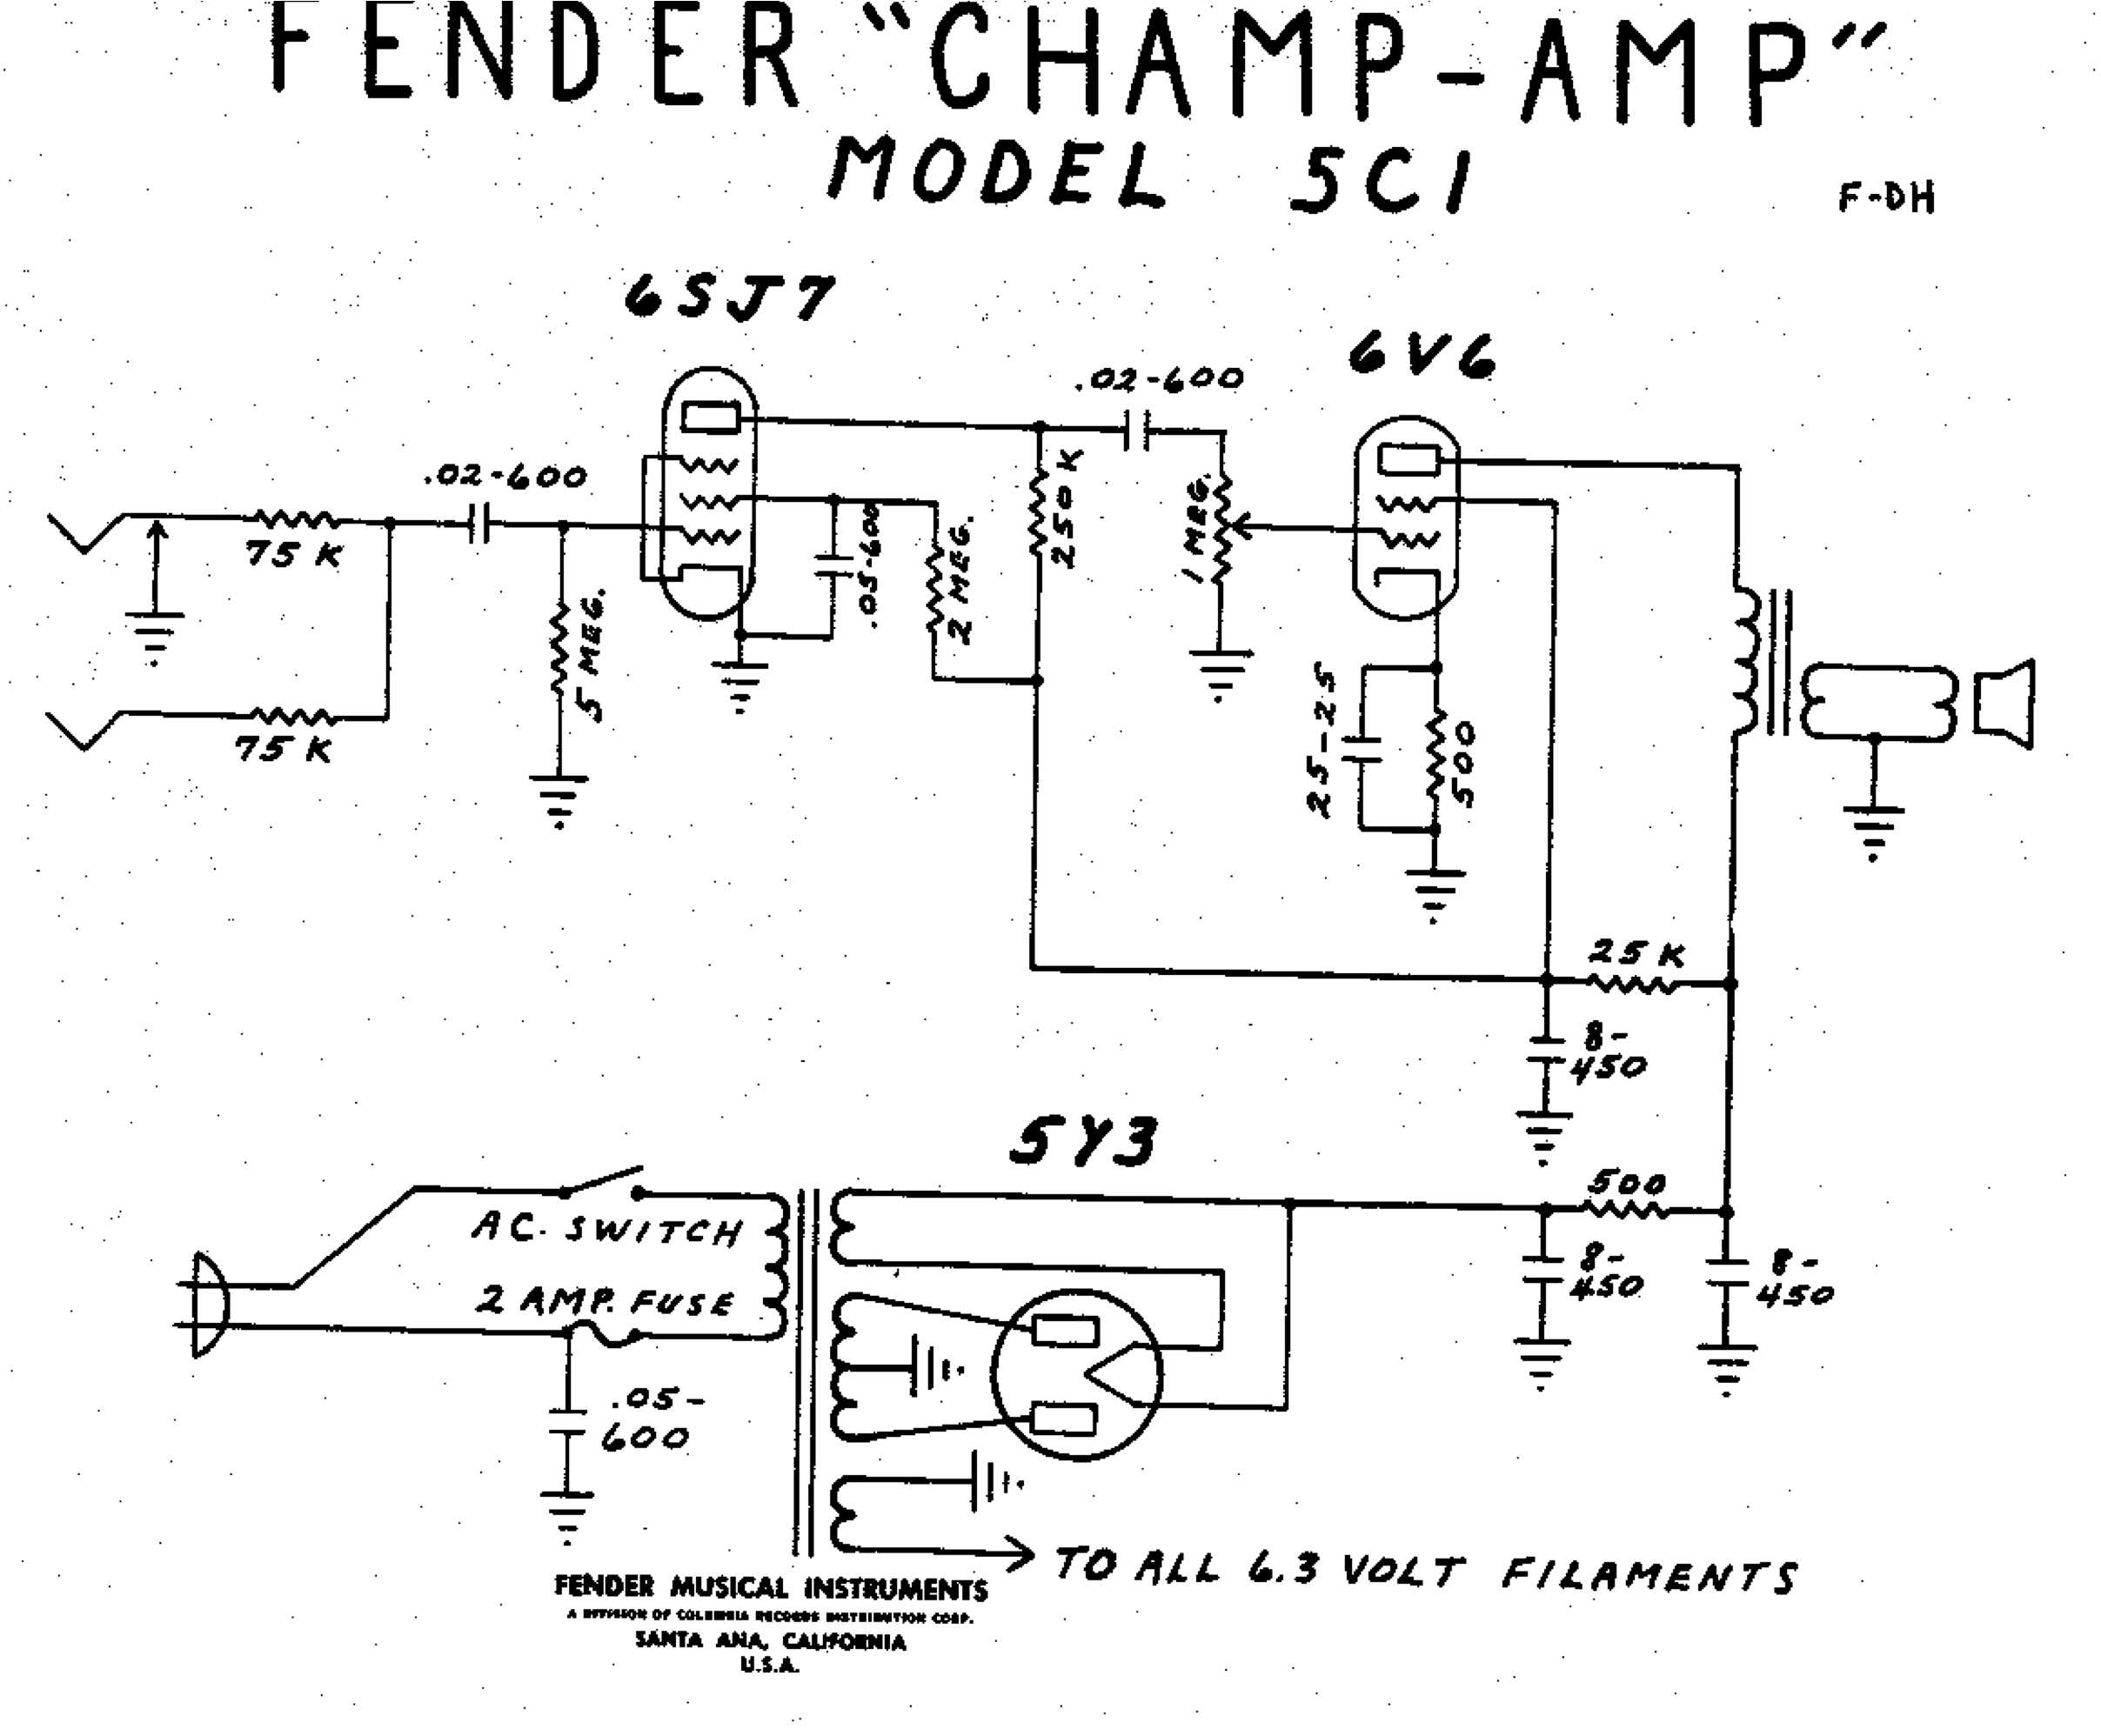 fender champ 5c1 wiring diagram my fender champ vintage amps Fender Tremolux Amp